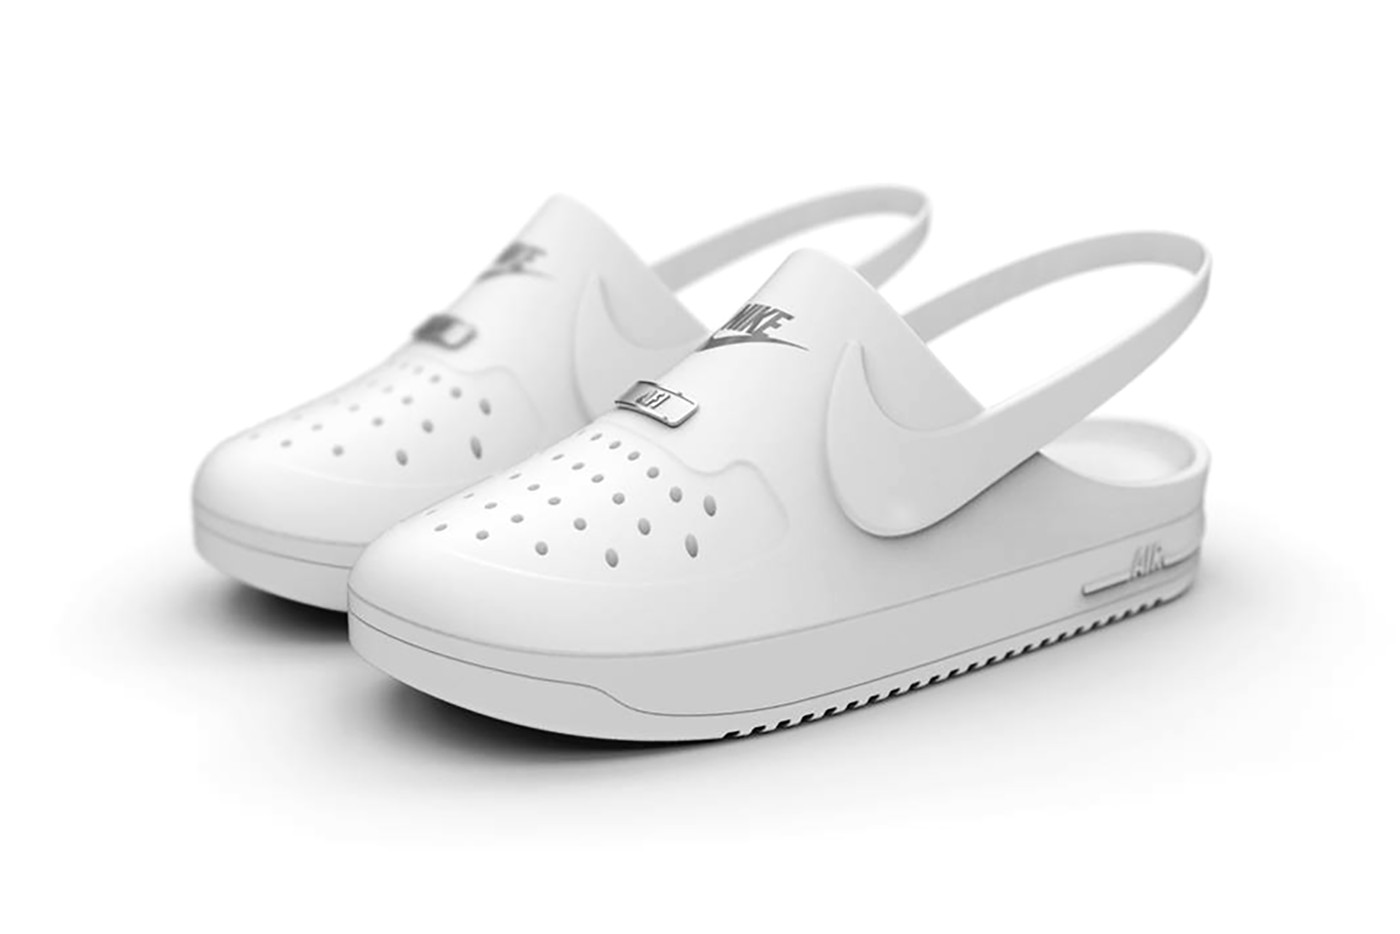 nike crocs collaboration air force 1 clogs hybrid unofficial Keegan McDaniel shoes design